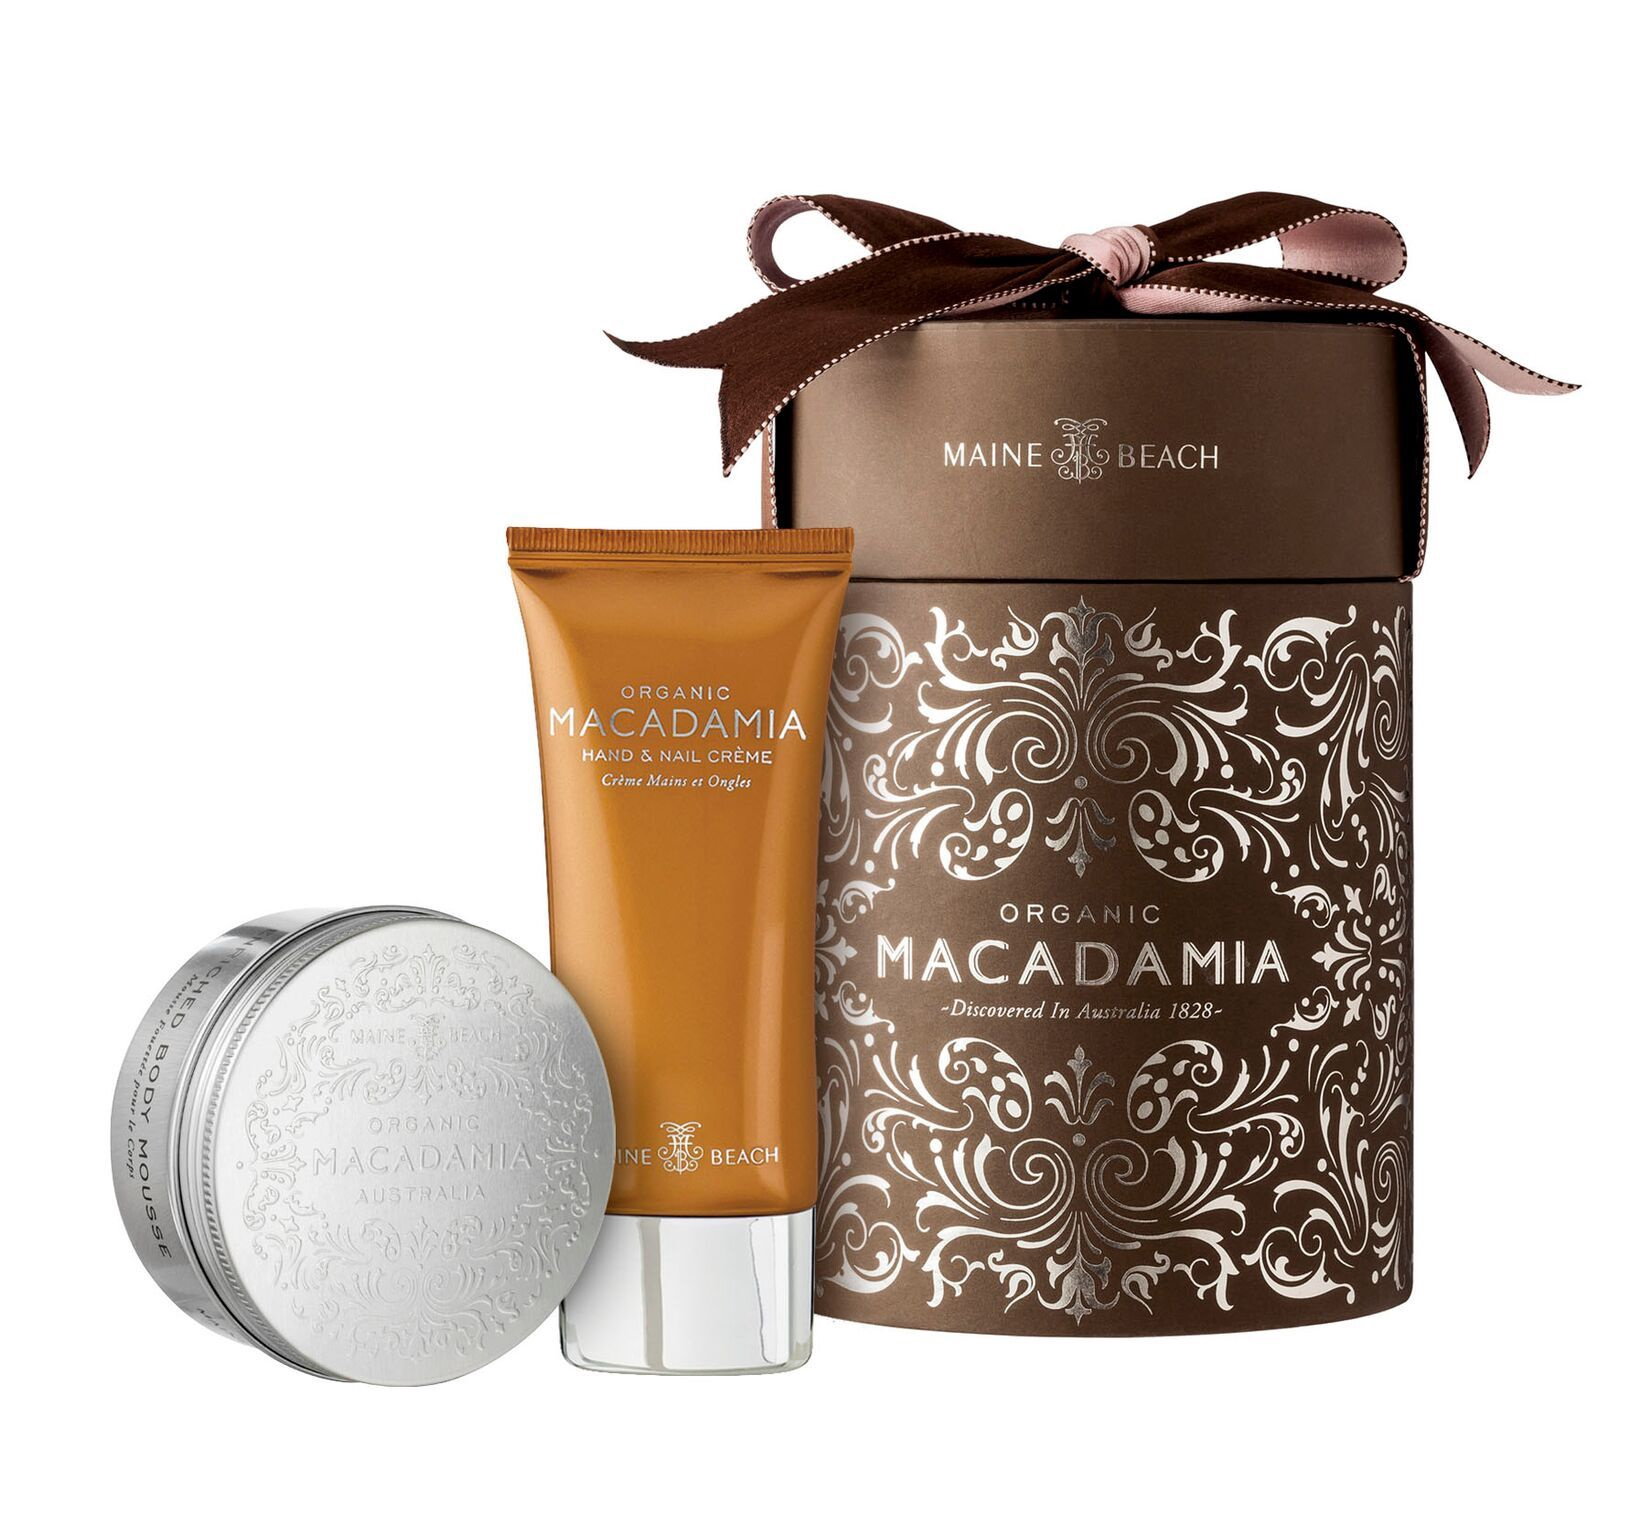 MAINE BEACH ORGANIC MACADAMIA DUO GIFT BOX